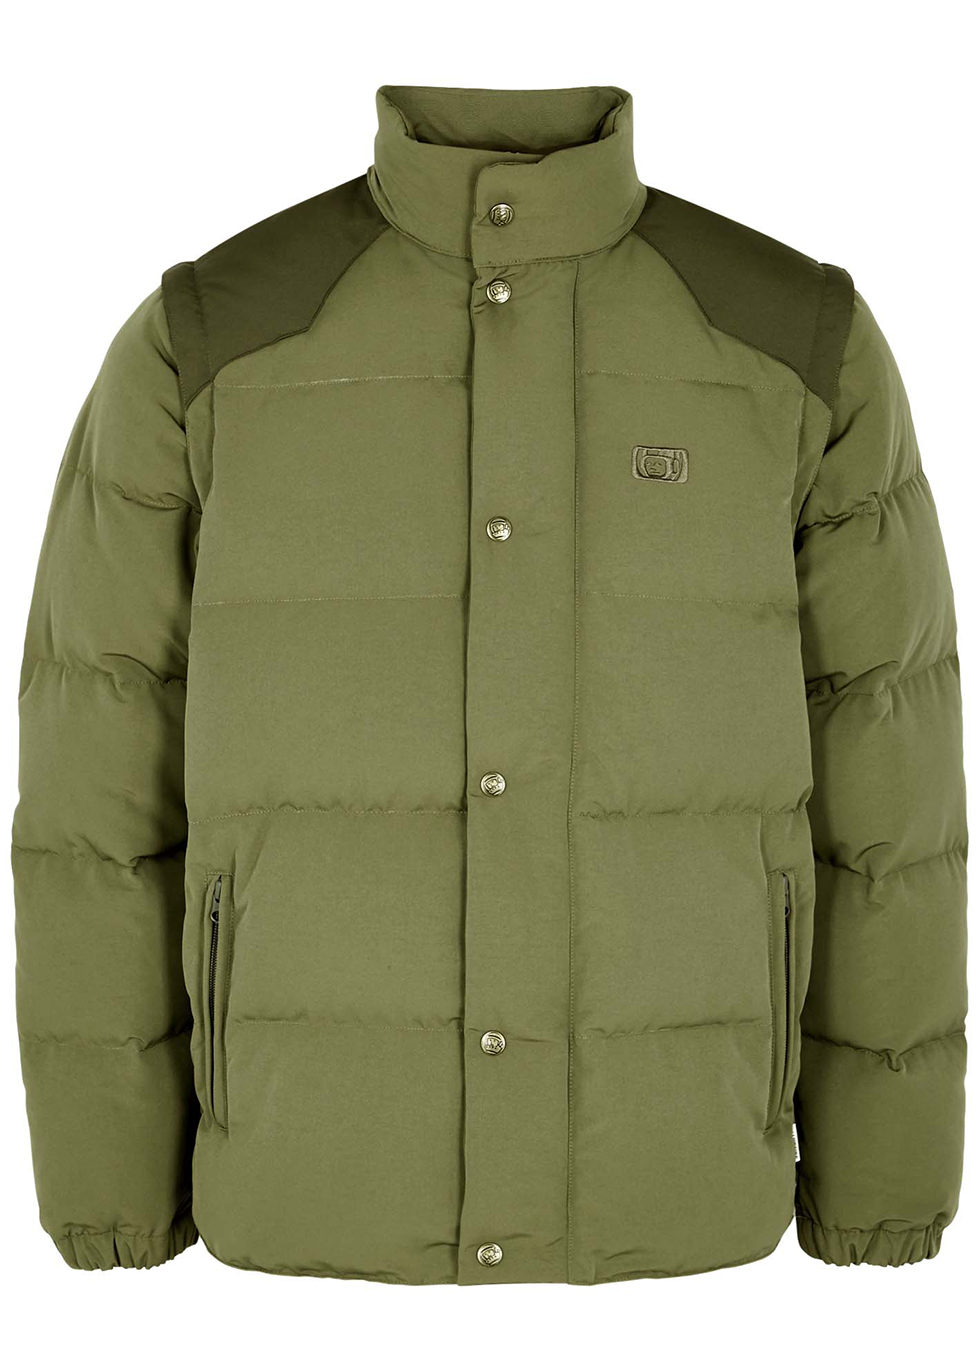 Army green quilted nylon jacket